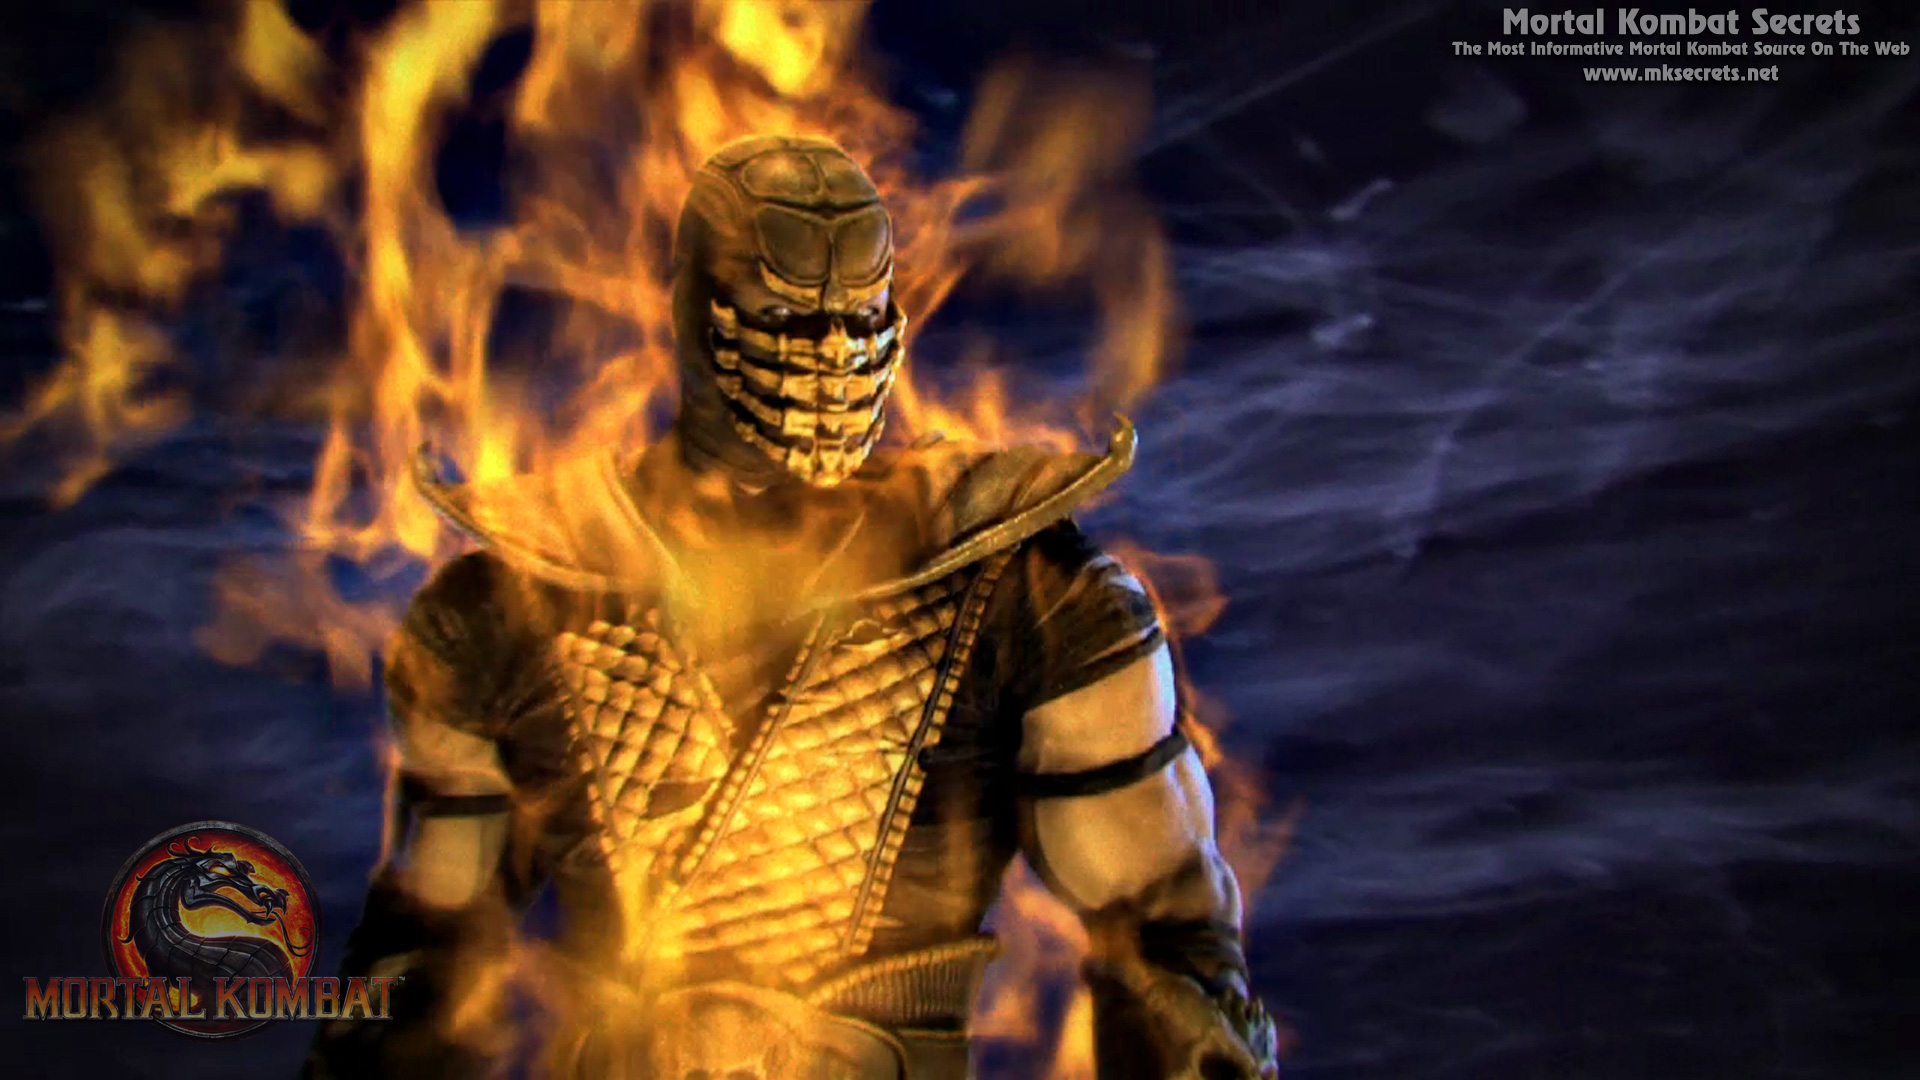 Wallpapers de Mortal Kombat HD   Taringa 1920x1080